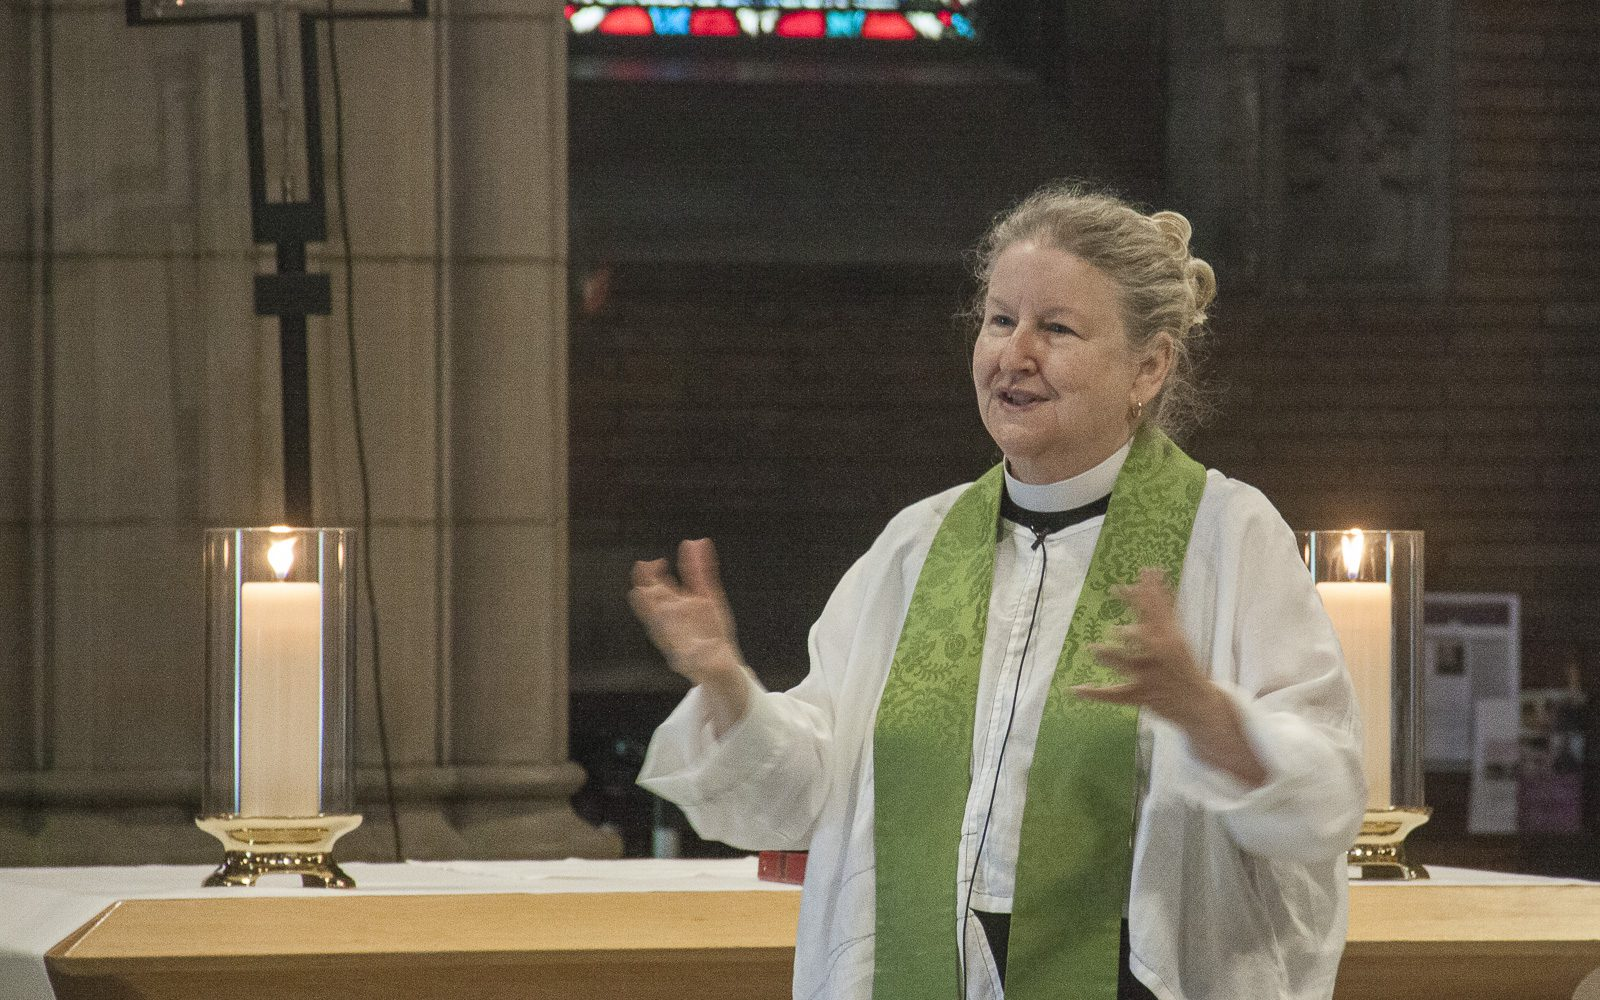 The Rev. Sarah Shofstall preaching